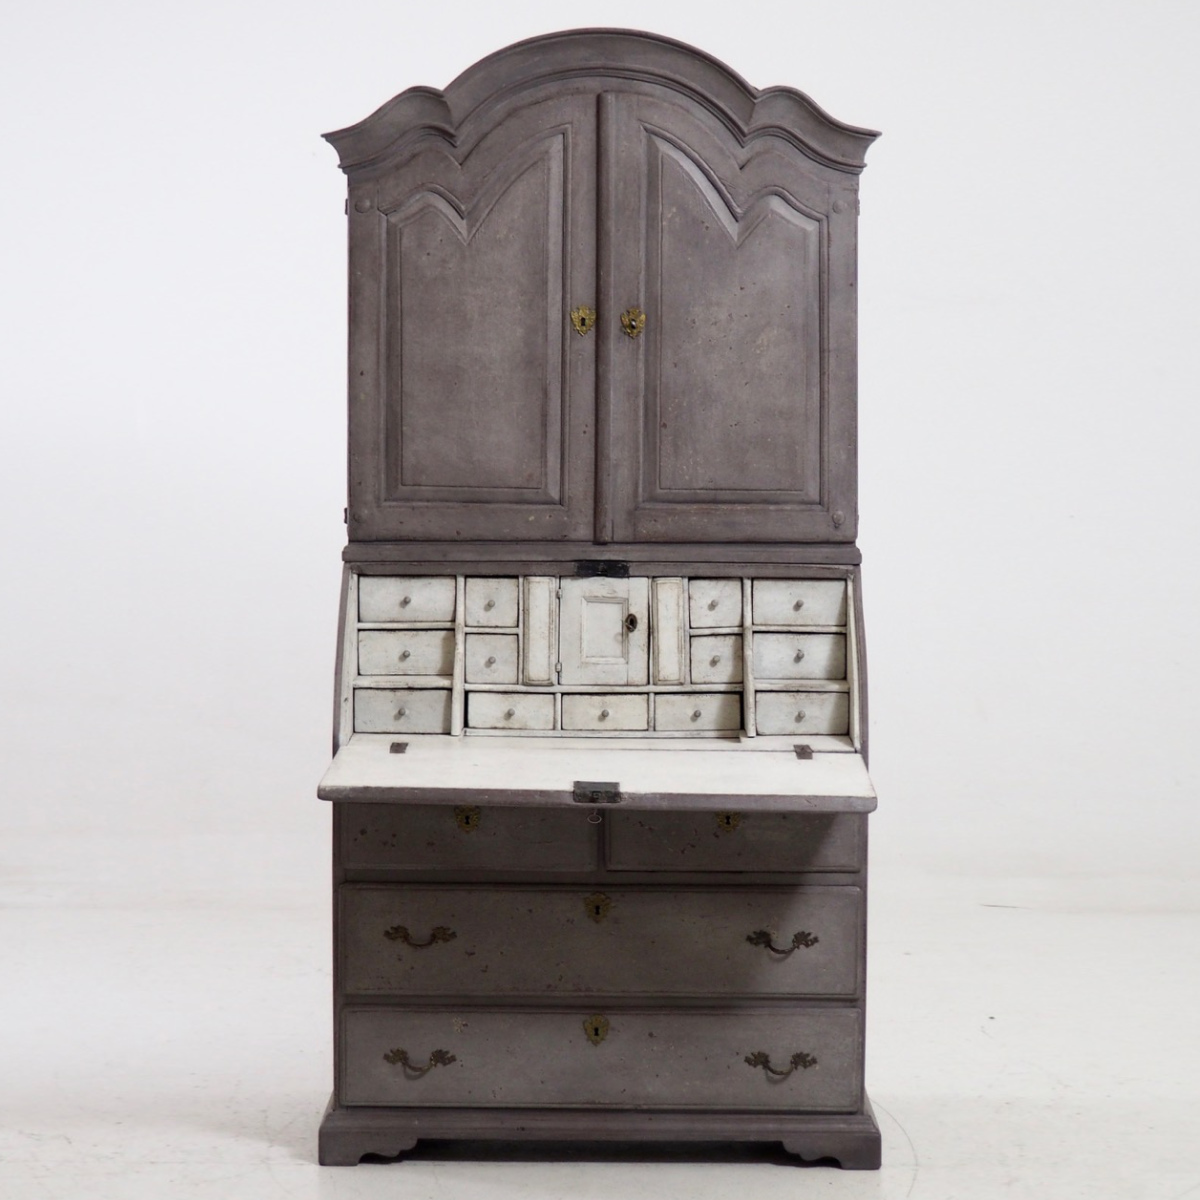 Charming Swedish bureau, circa 1810. - € 3.300